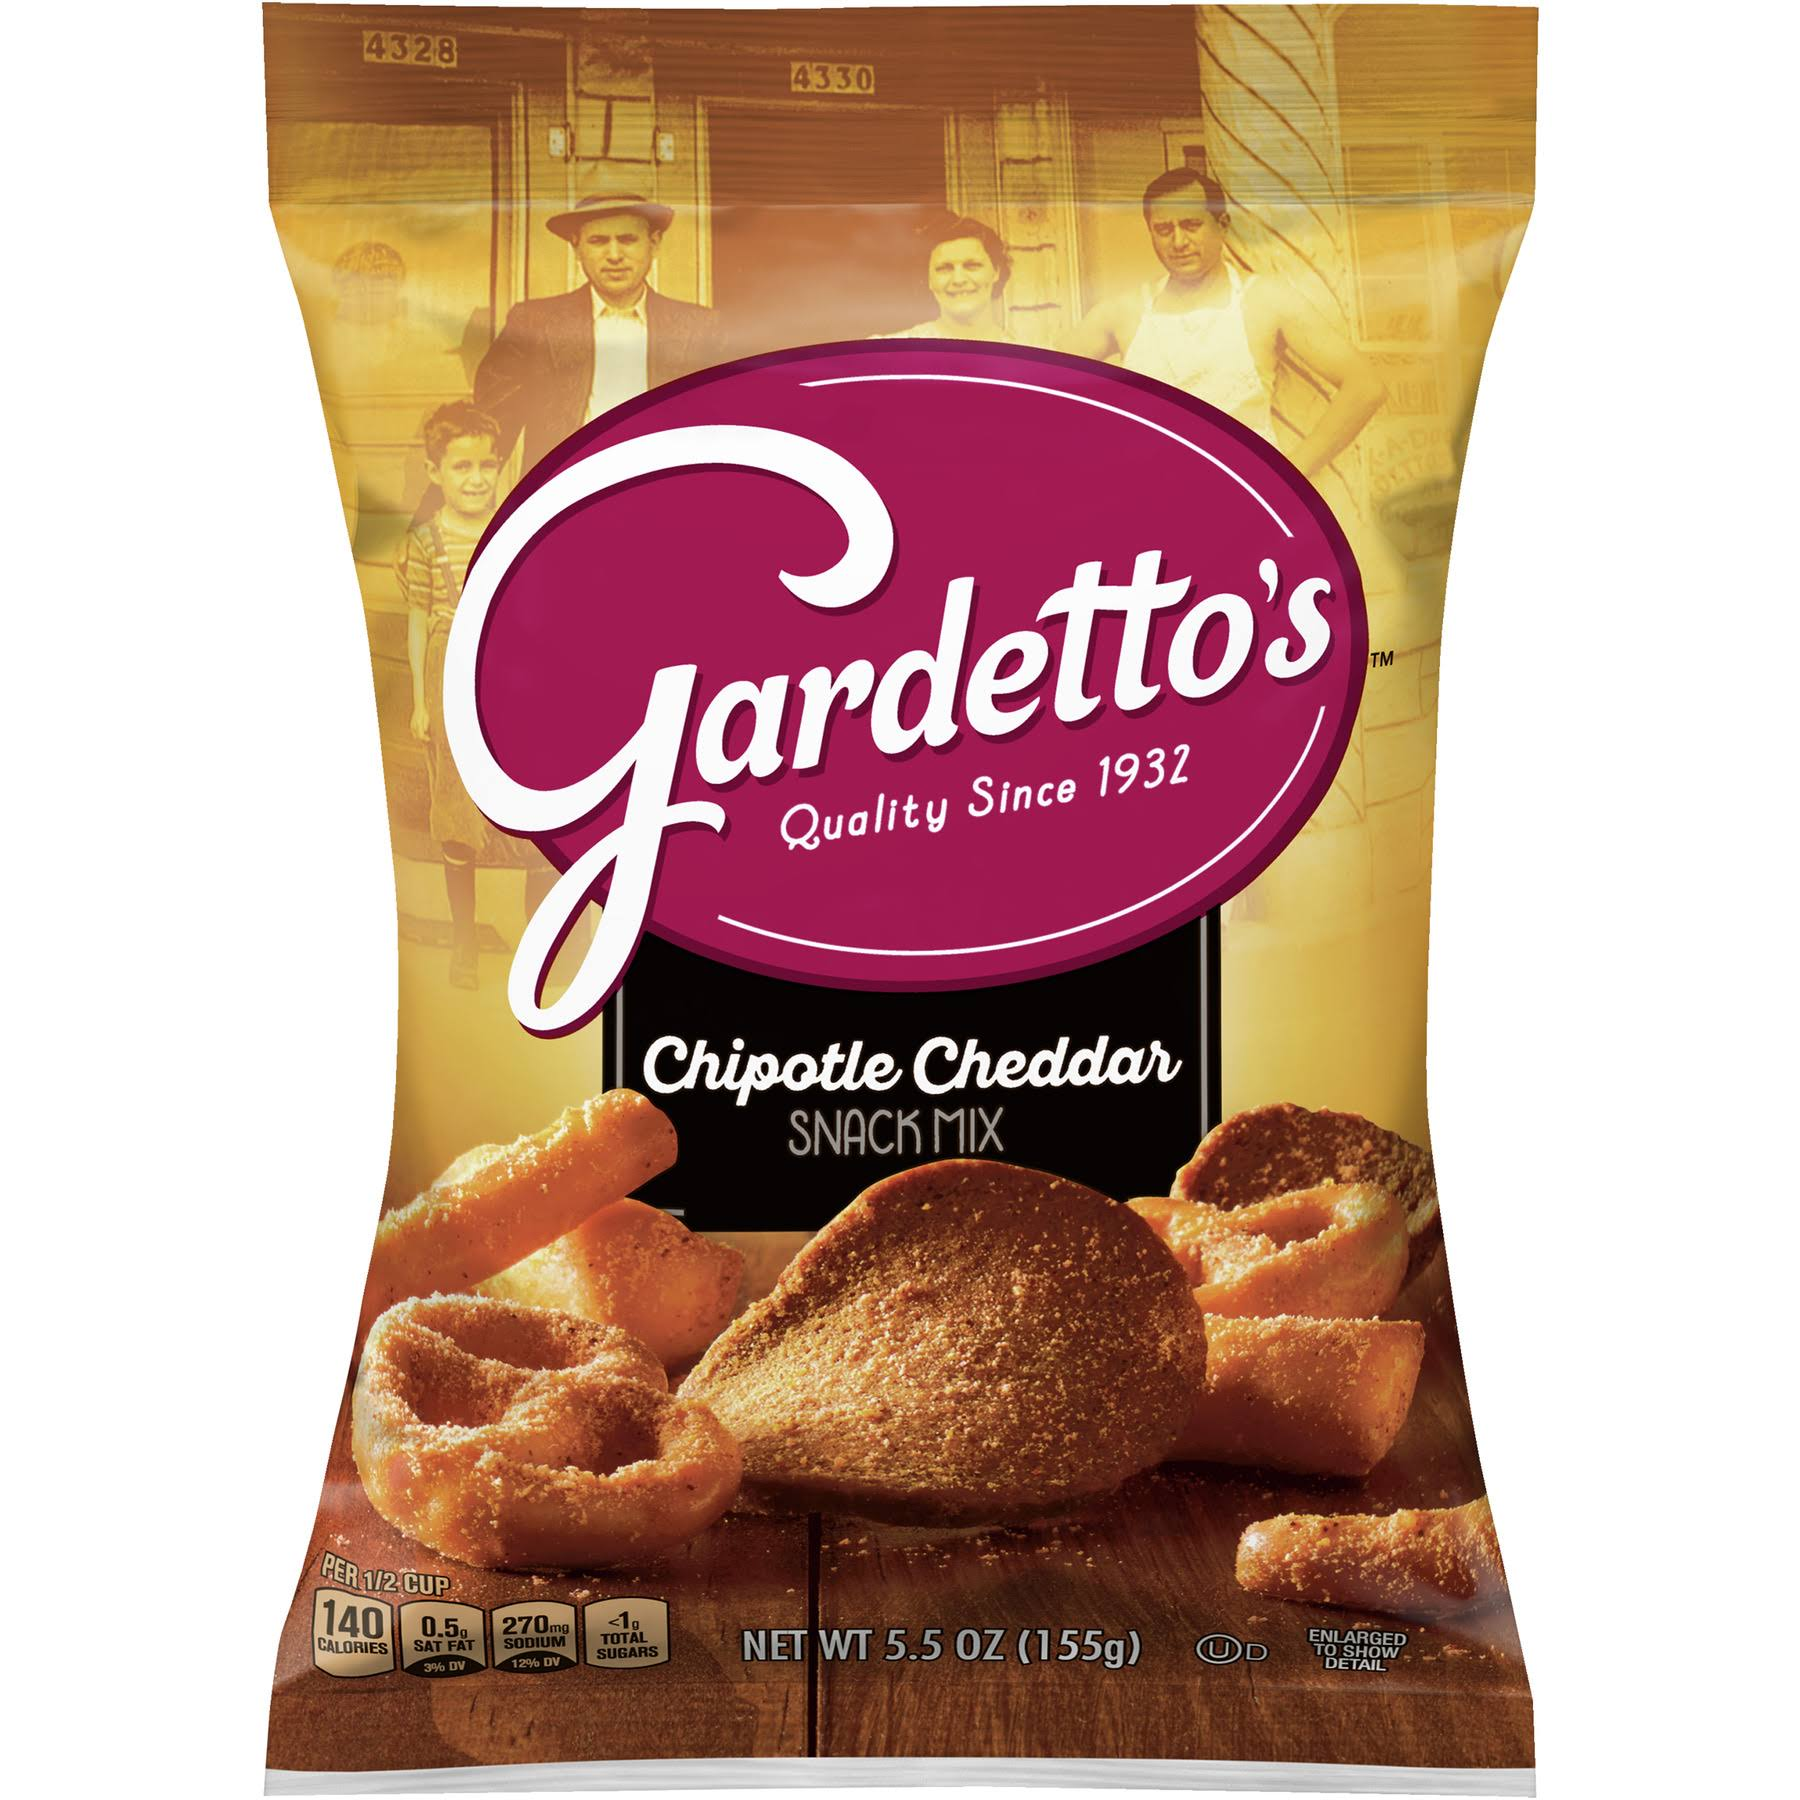 Gardetto's Chipotle Cheddar Snack Mix - 5.5oz